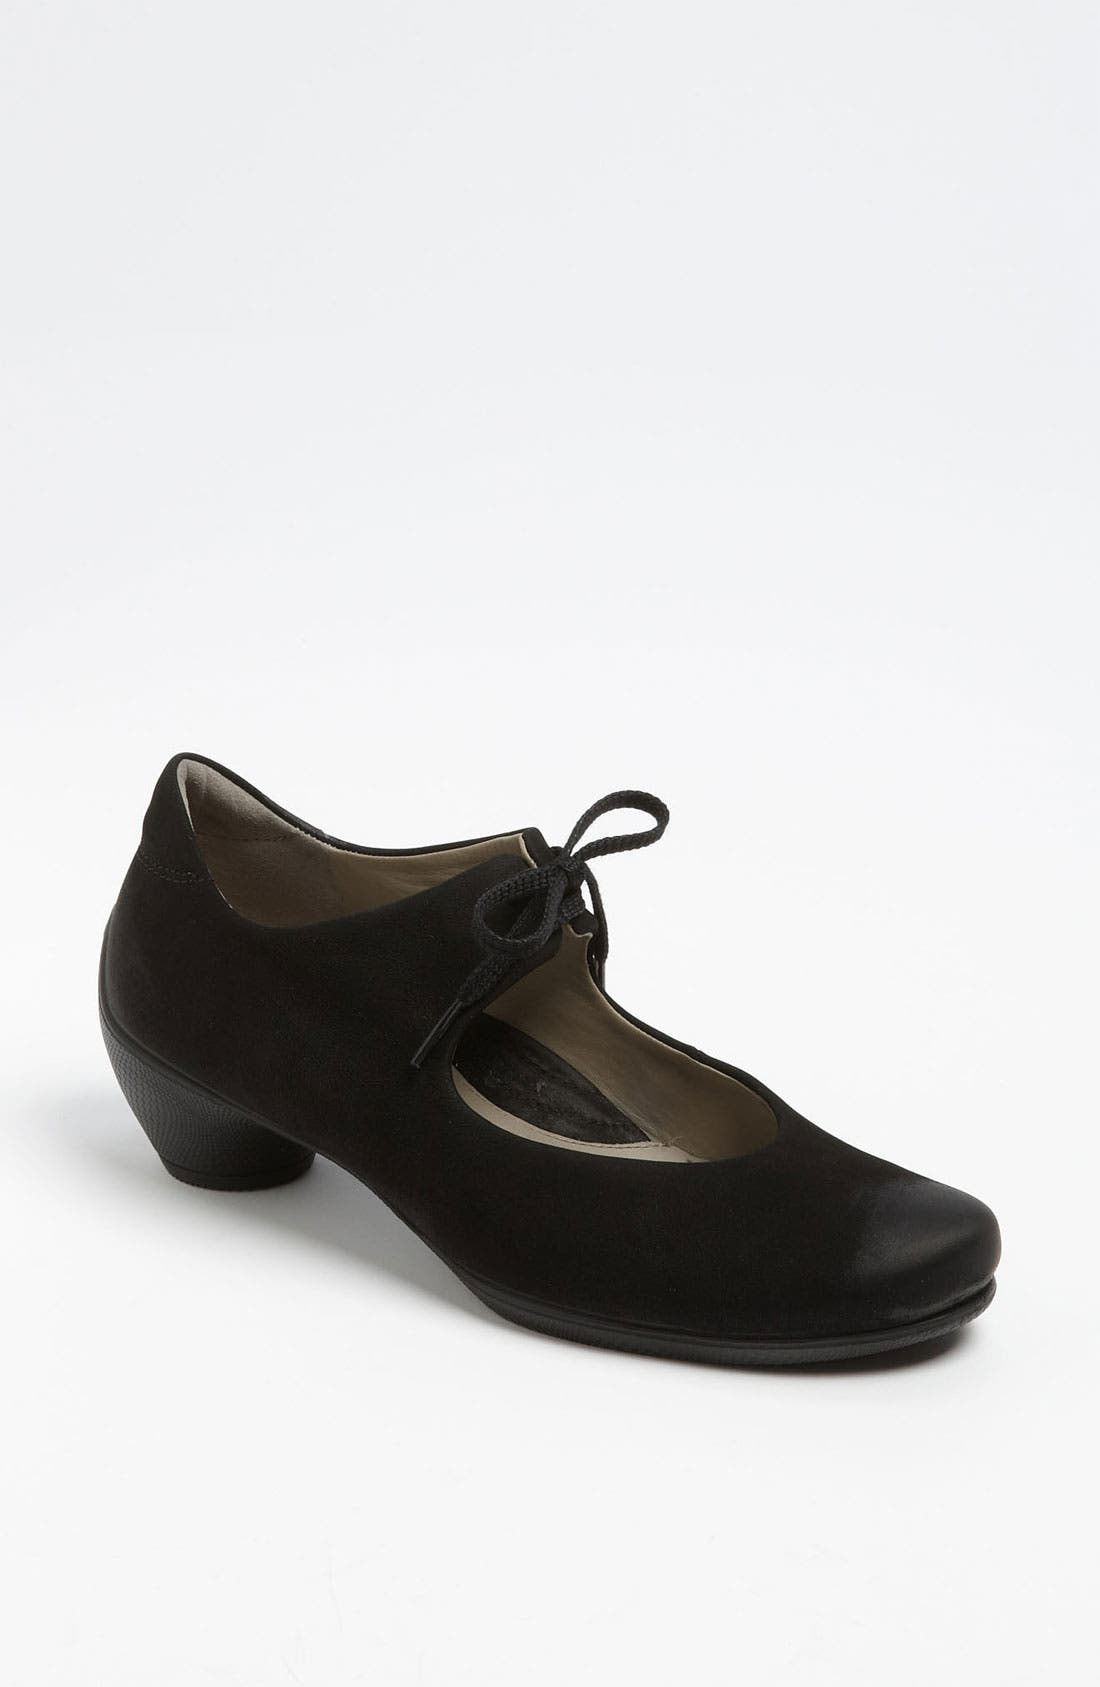 Main Image - ECCO 'Sculptured Lace' Mary Jane Pump